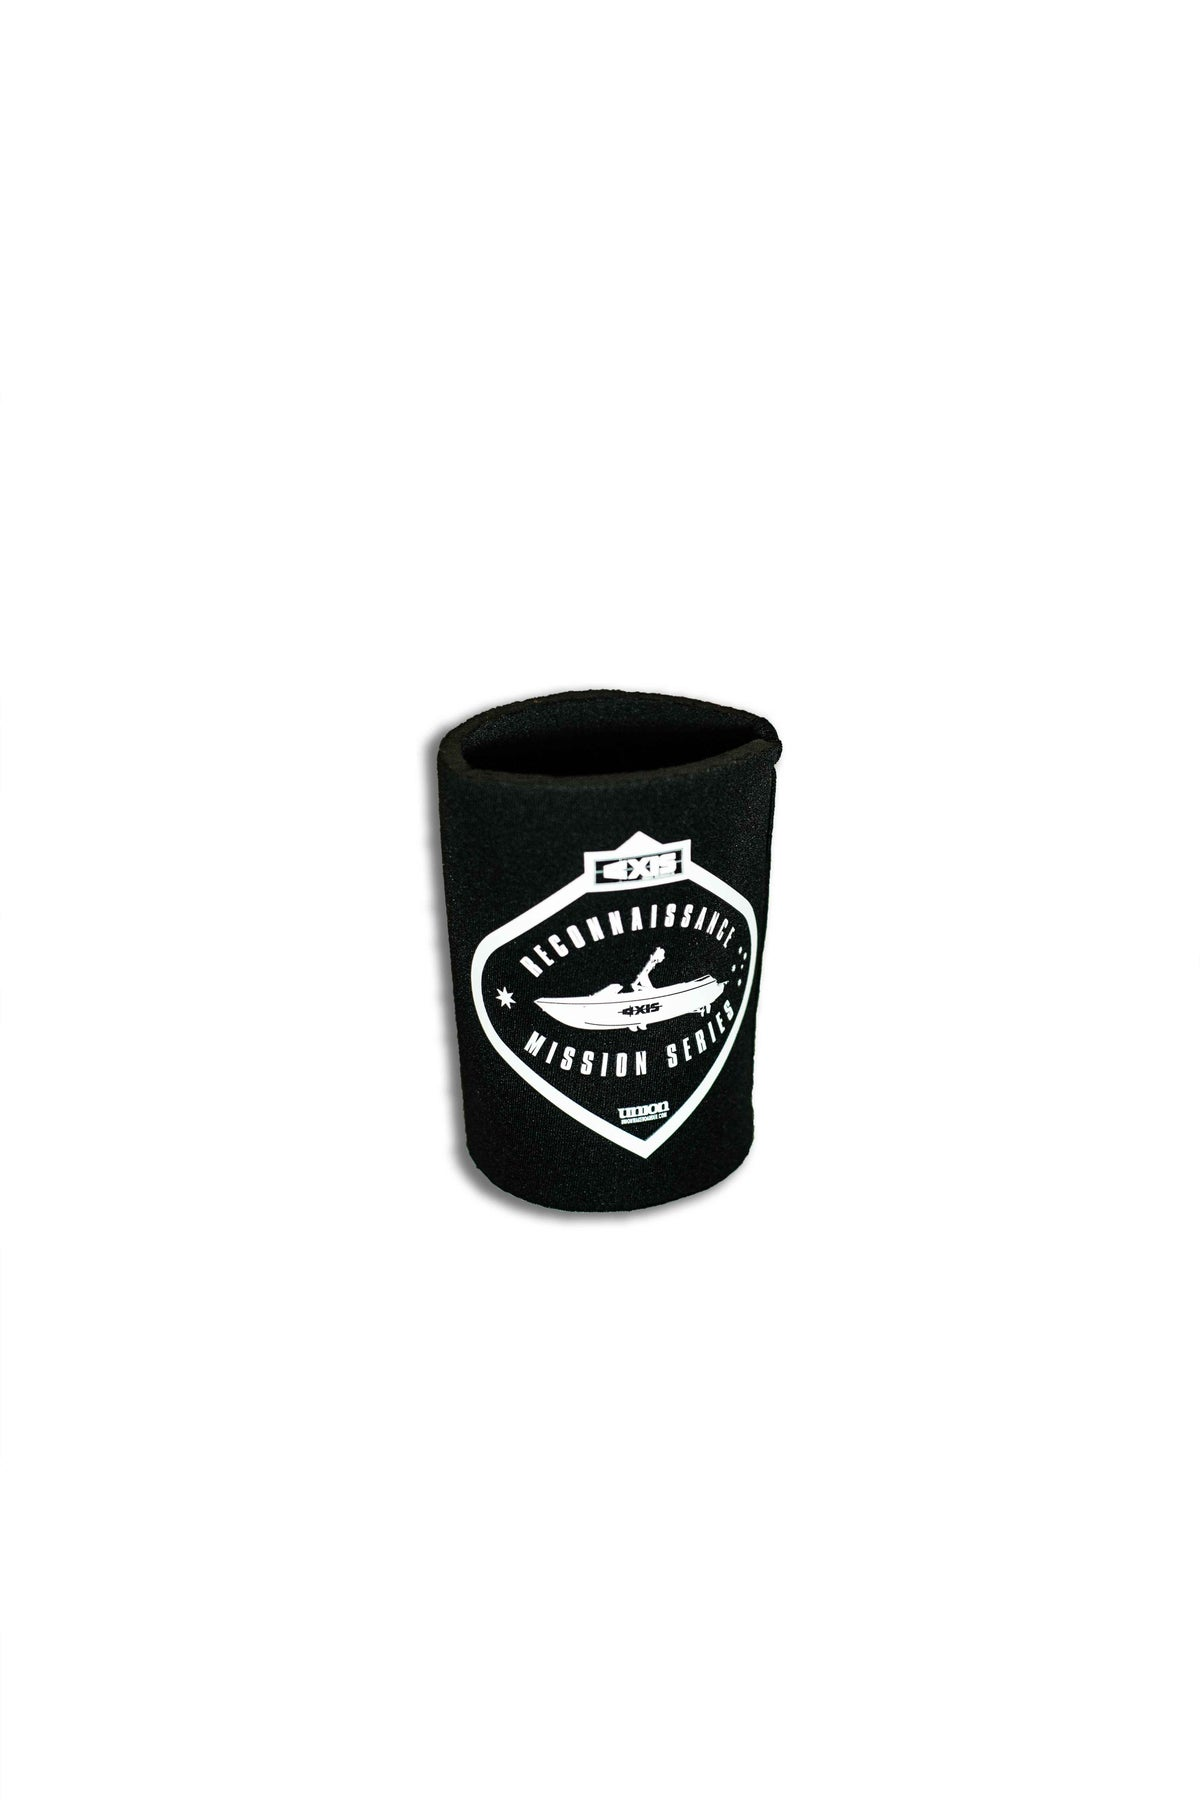 Image of Axis Stubby Holder